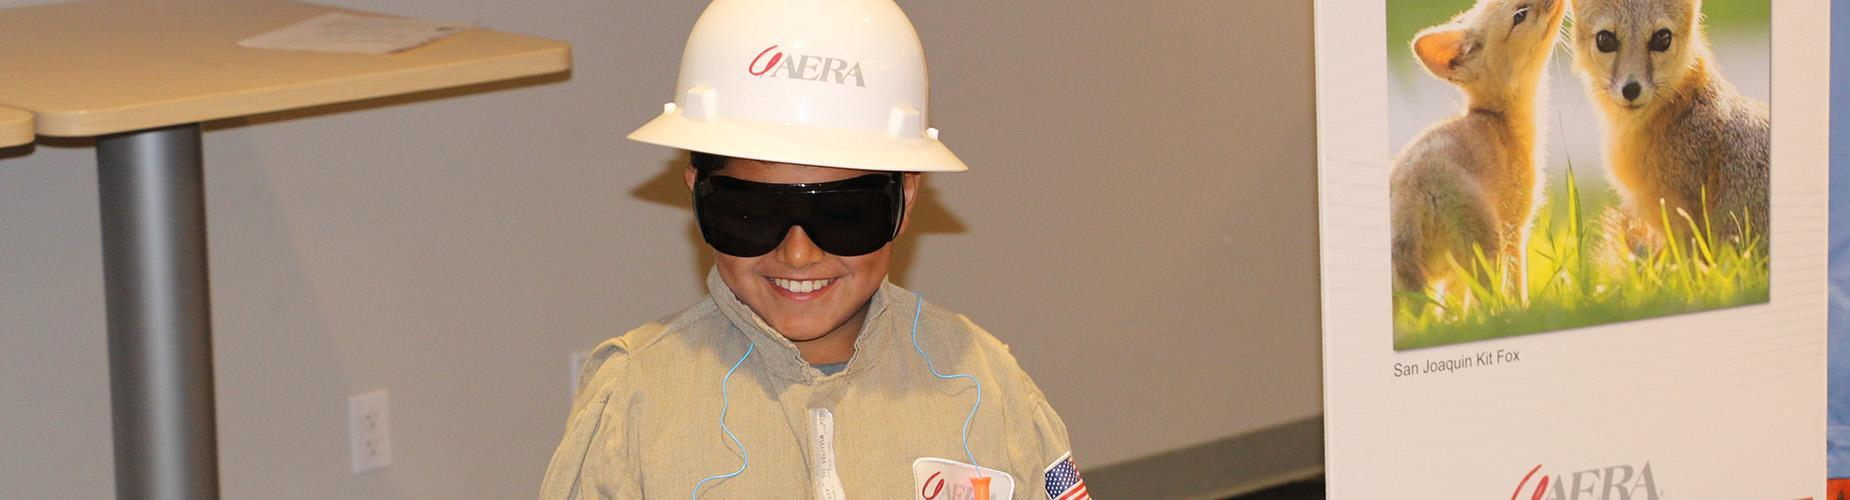 Student wearing a hard hat